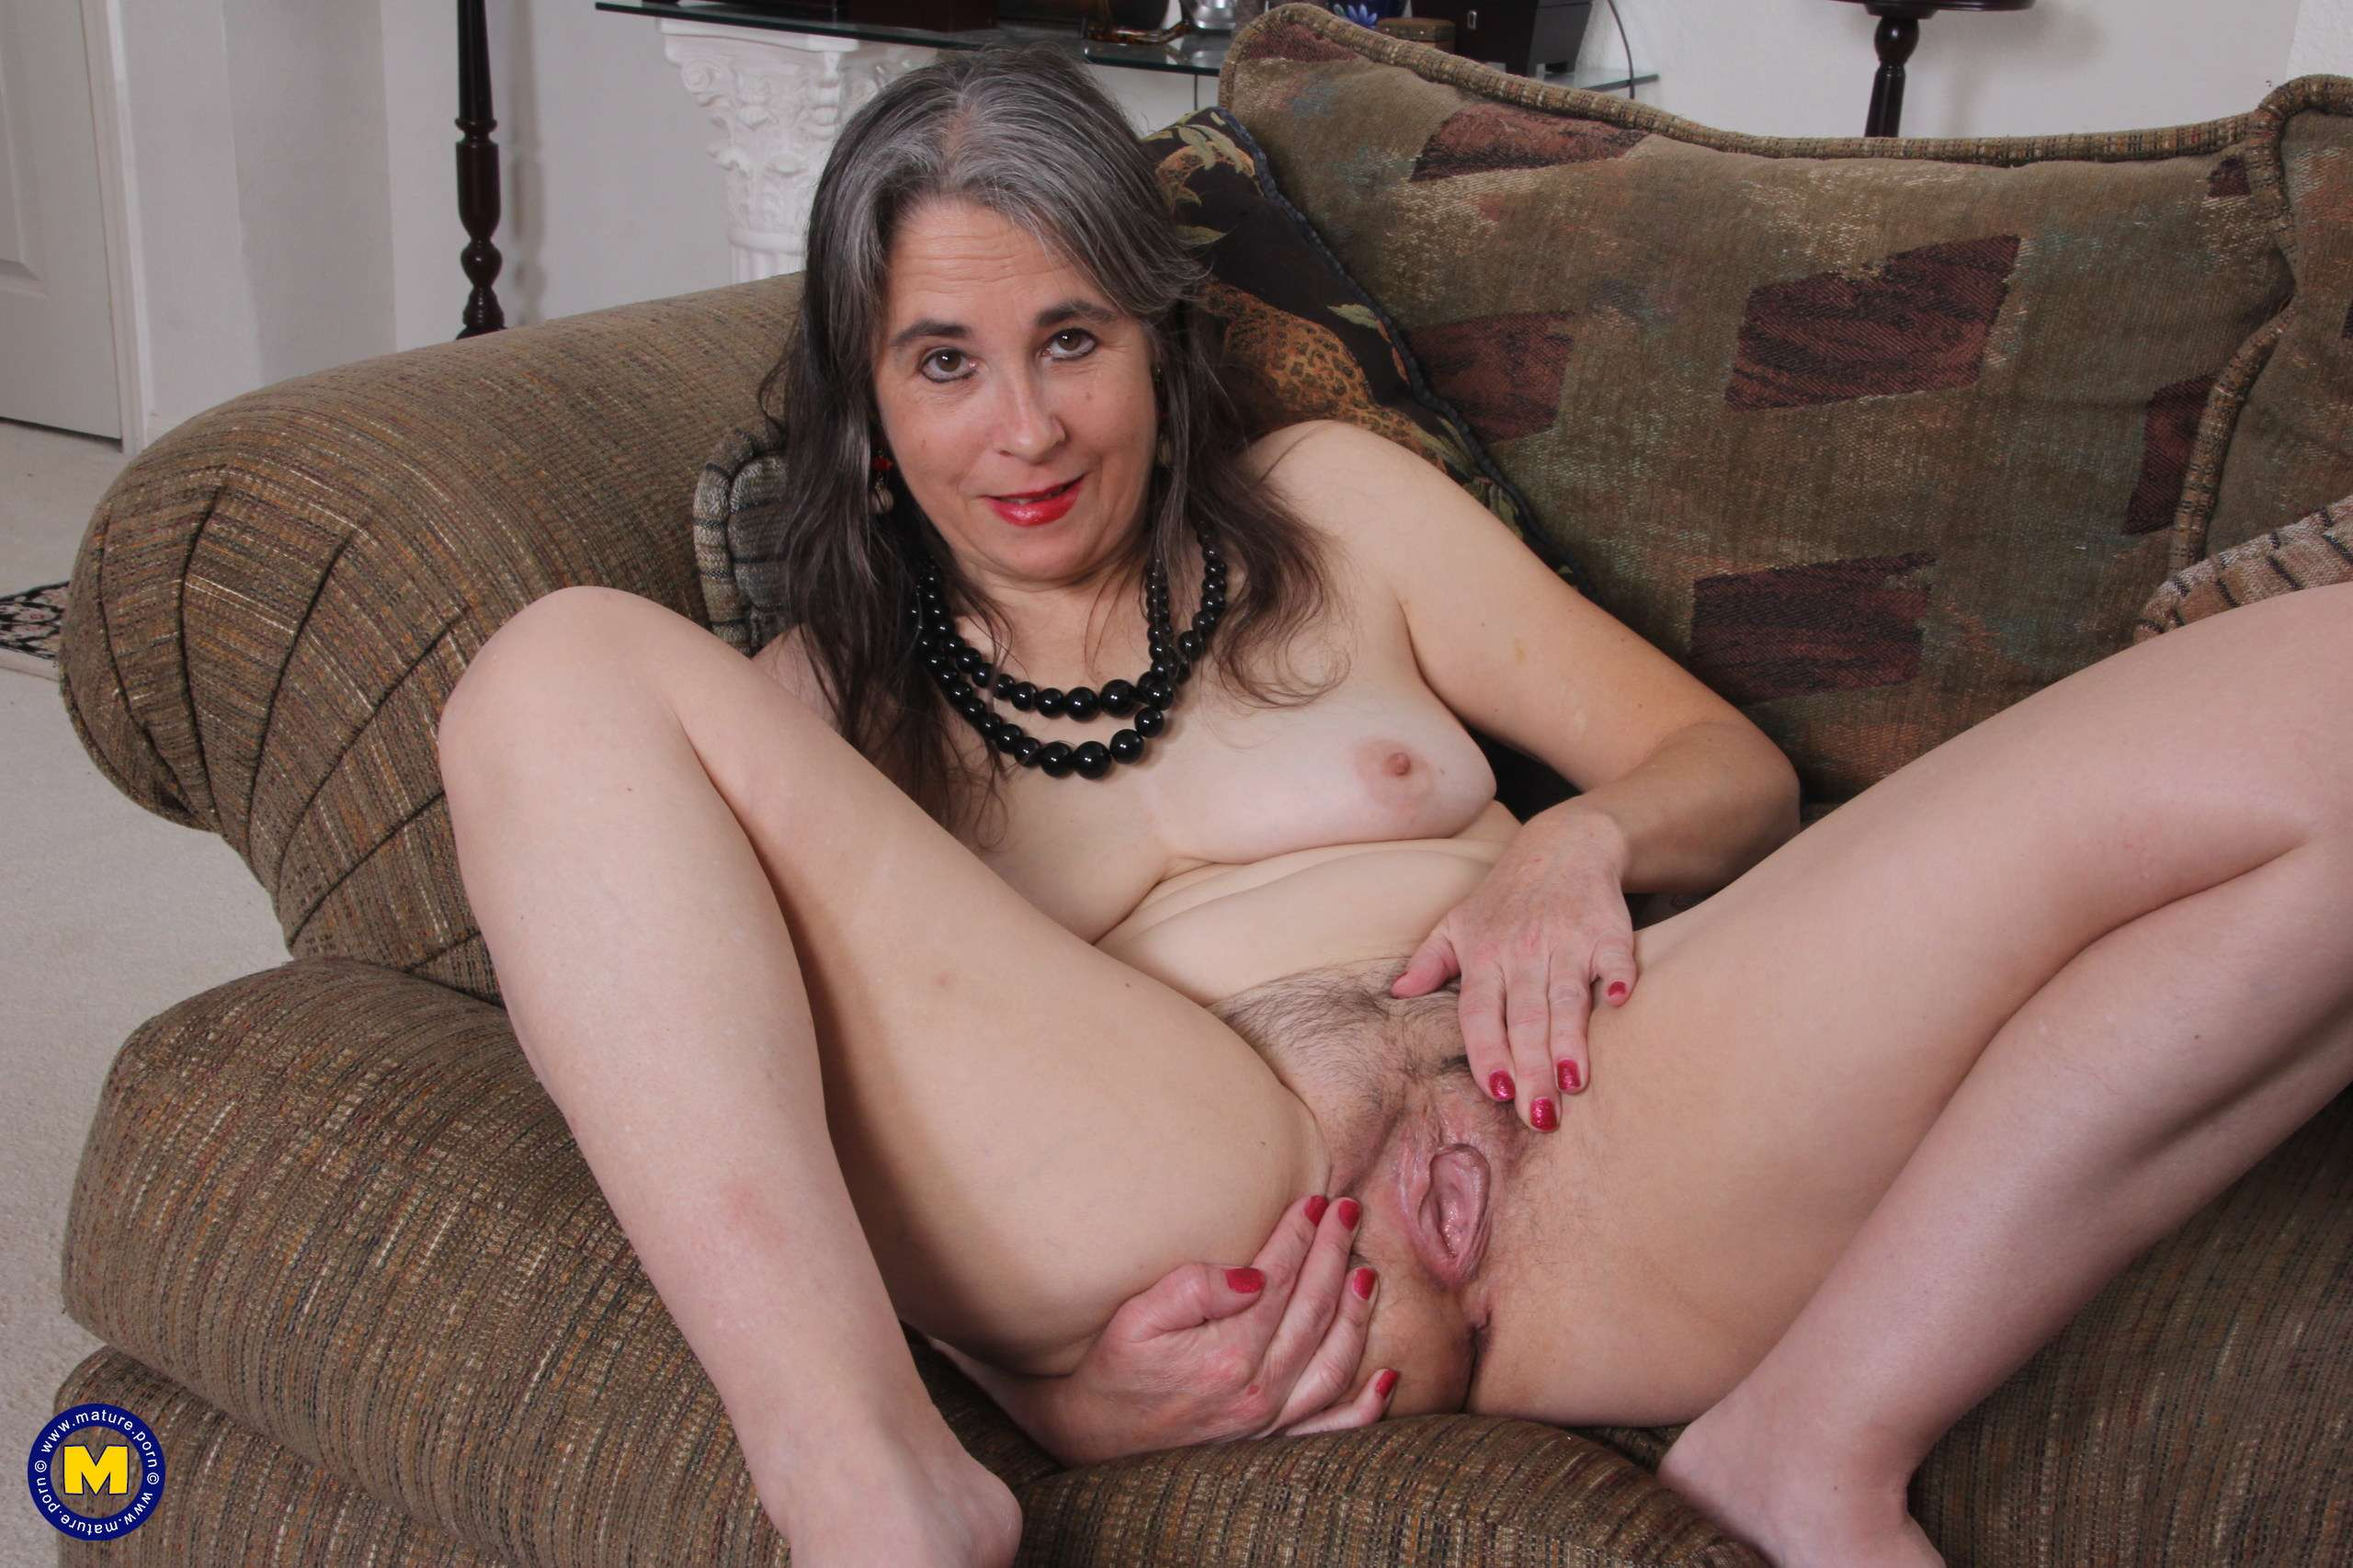 Naughty American mature lady getting wet and wild